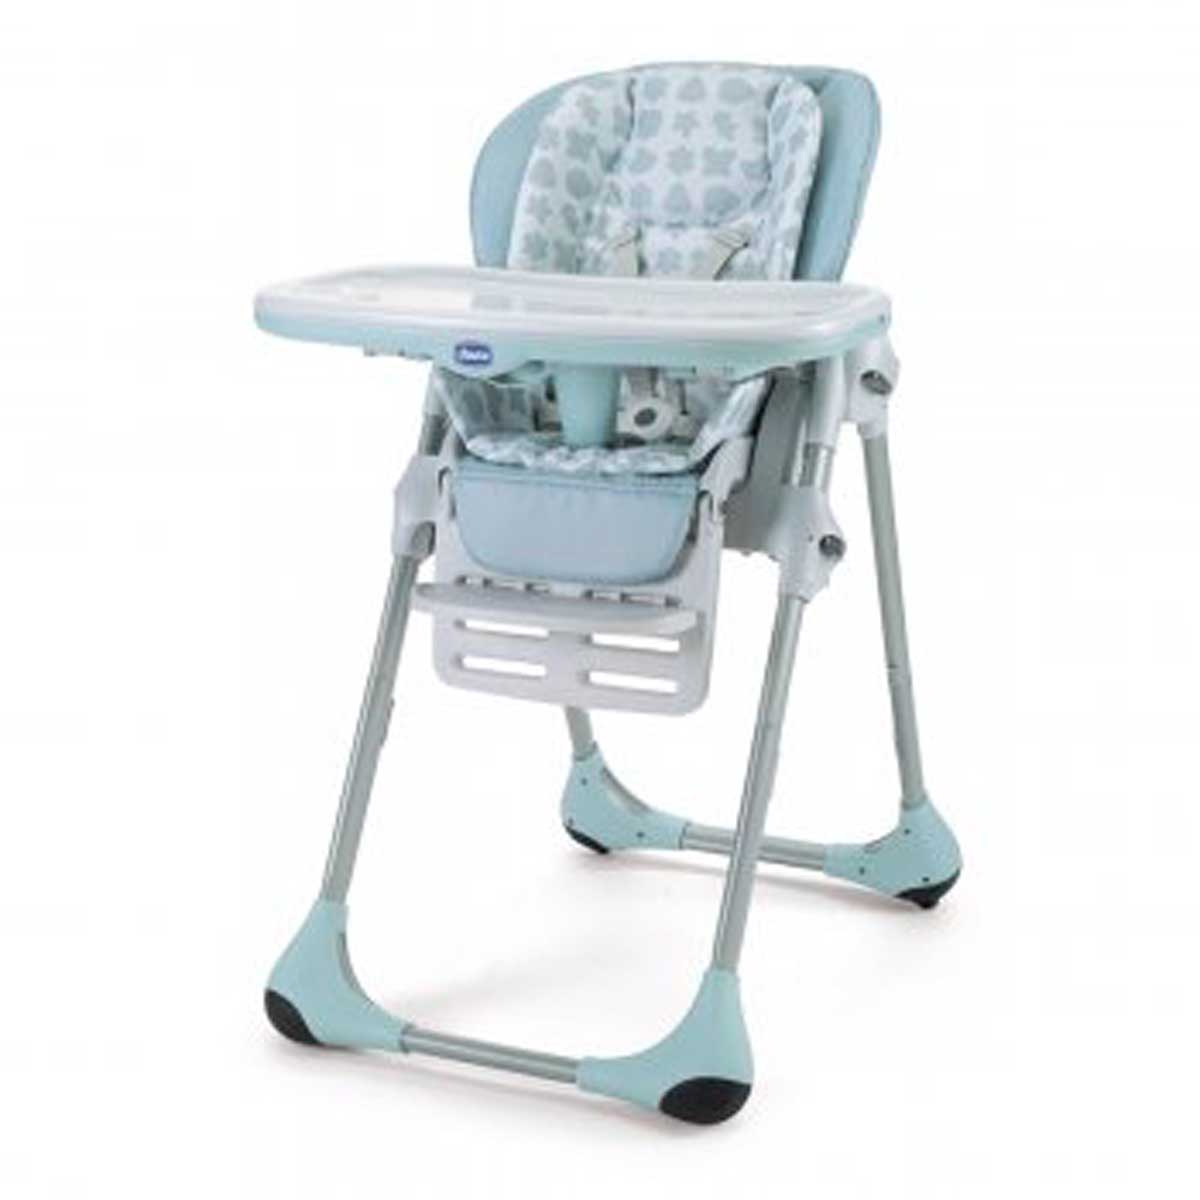 Chicco Polly Magic High Chair Chicco+High+Chair Details zu Chicco Hochstuhl High Chair Polly 2 in 1 ...